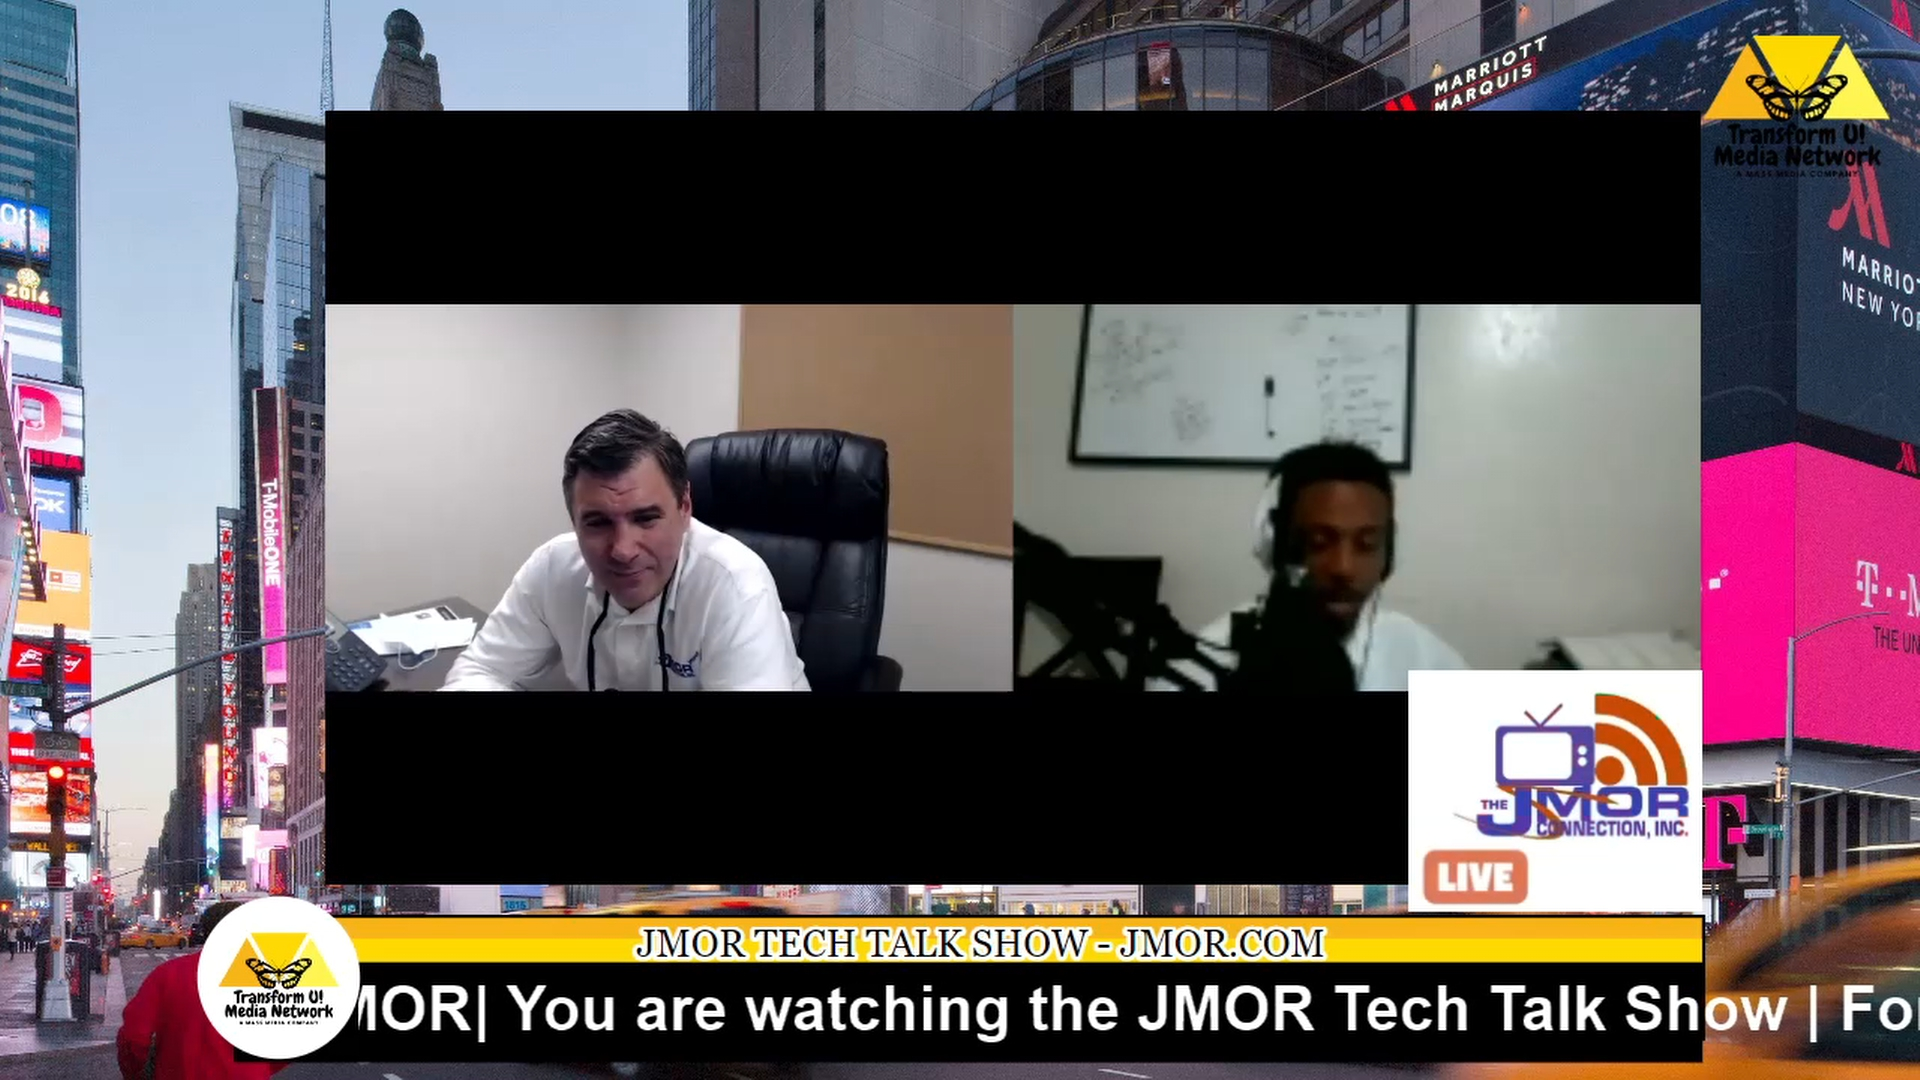 JMOR Tech Talk Show 2020:E12  FB going to pay people for deactivacting their account during the election, Walmart, Amazon, Uber and more